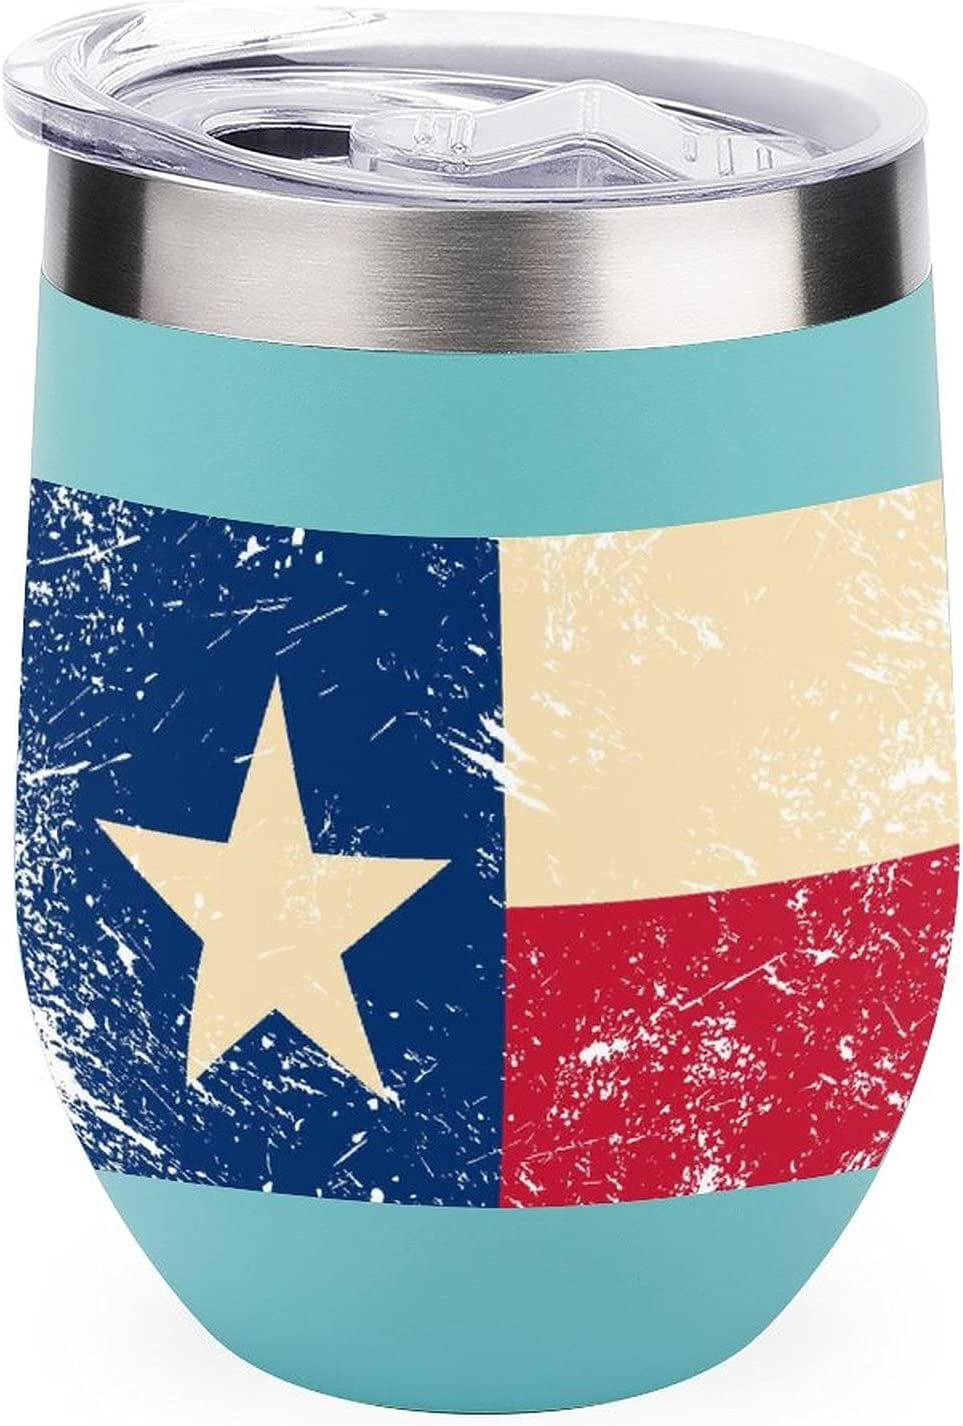 free shipping Texas State Flag Camping trip water OFFicial mail order Insulate mug Steel Stainless